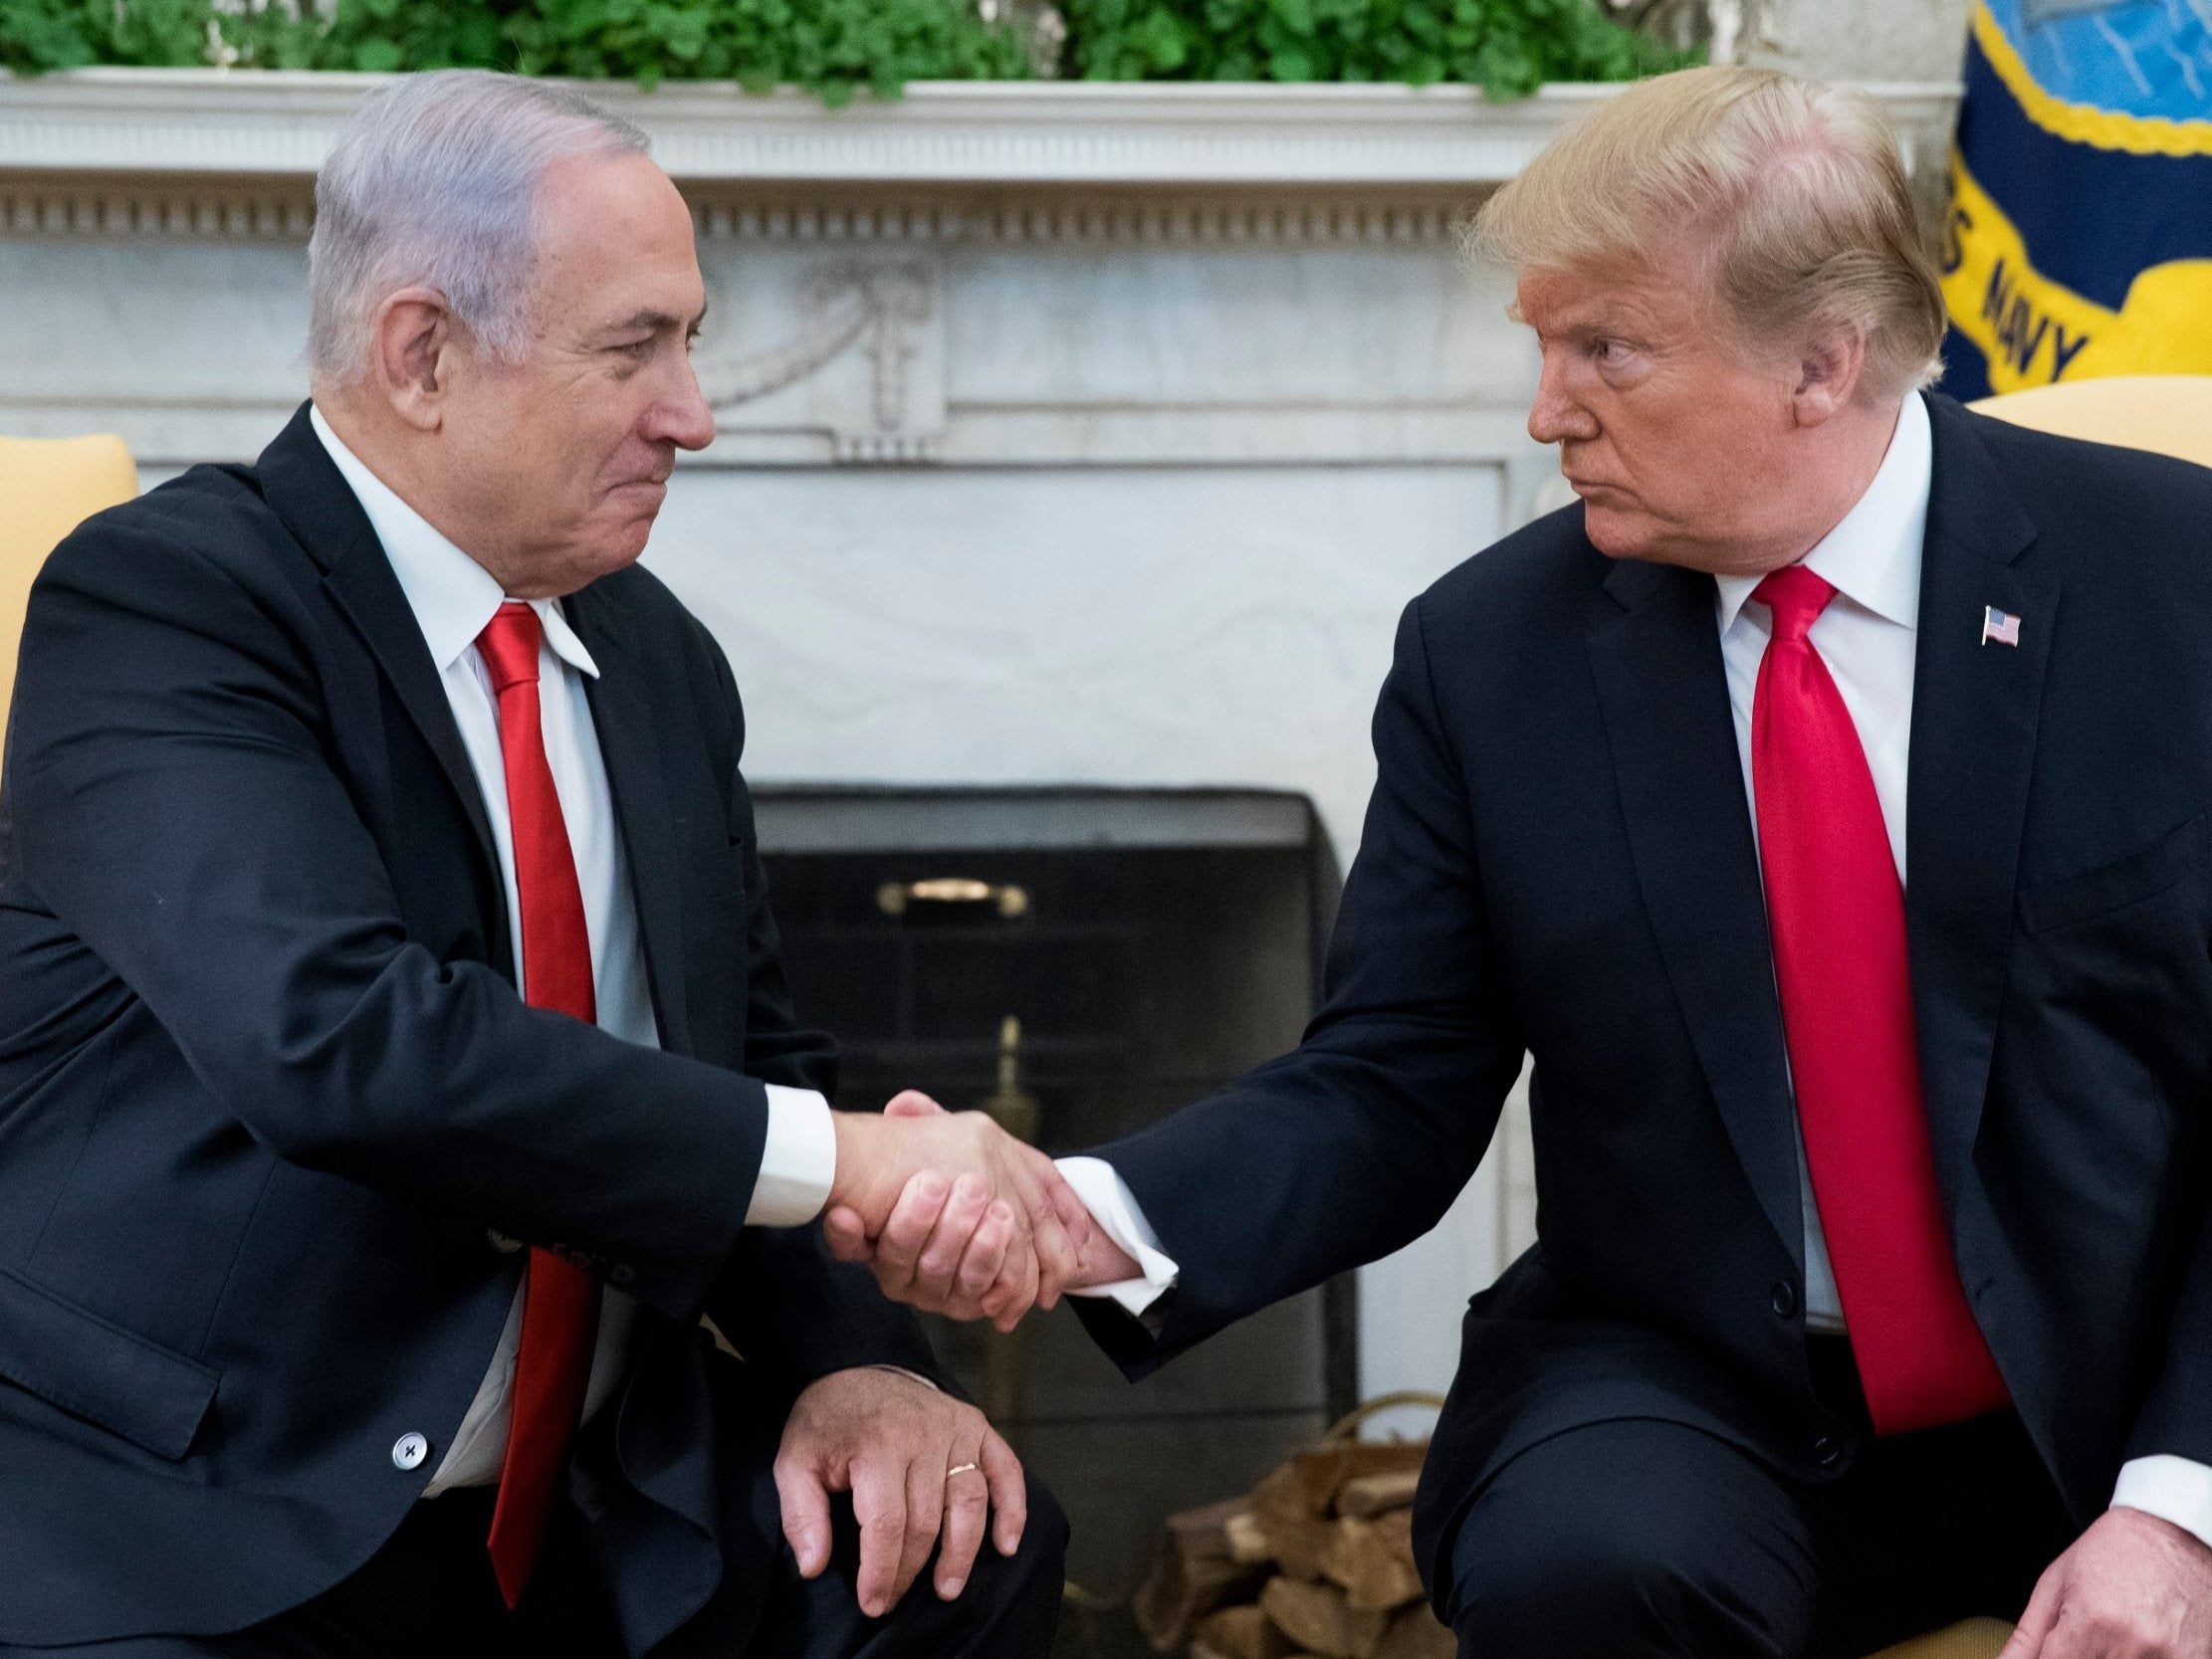 Opinion: By accepting Israeli control of the Golan Heights, Trump has accepted that Israel controls America